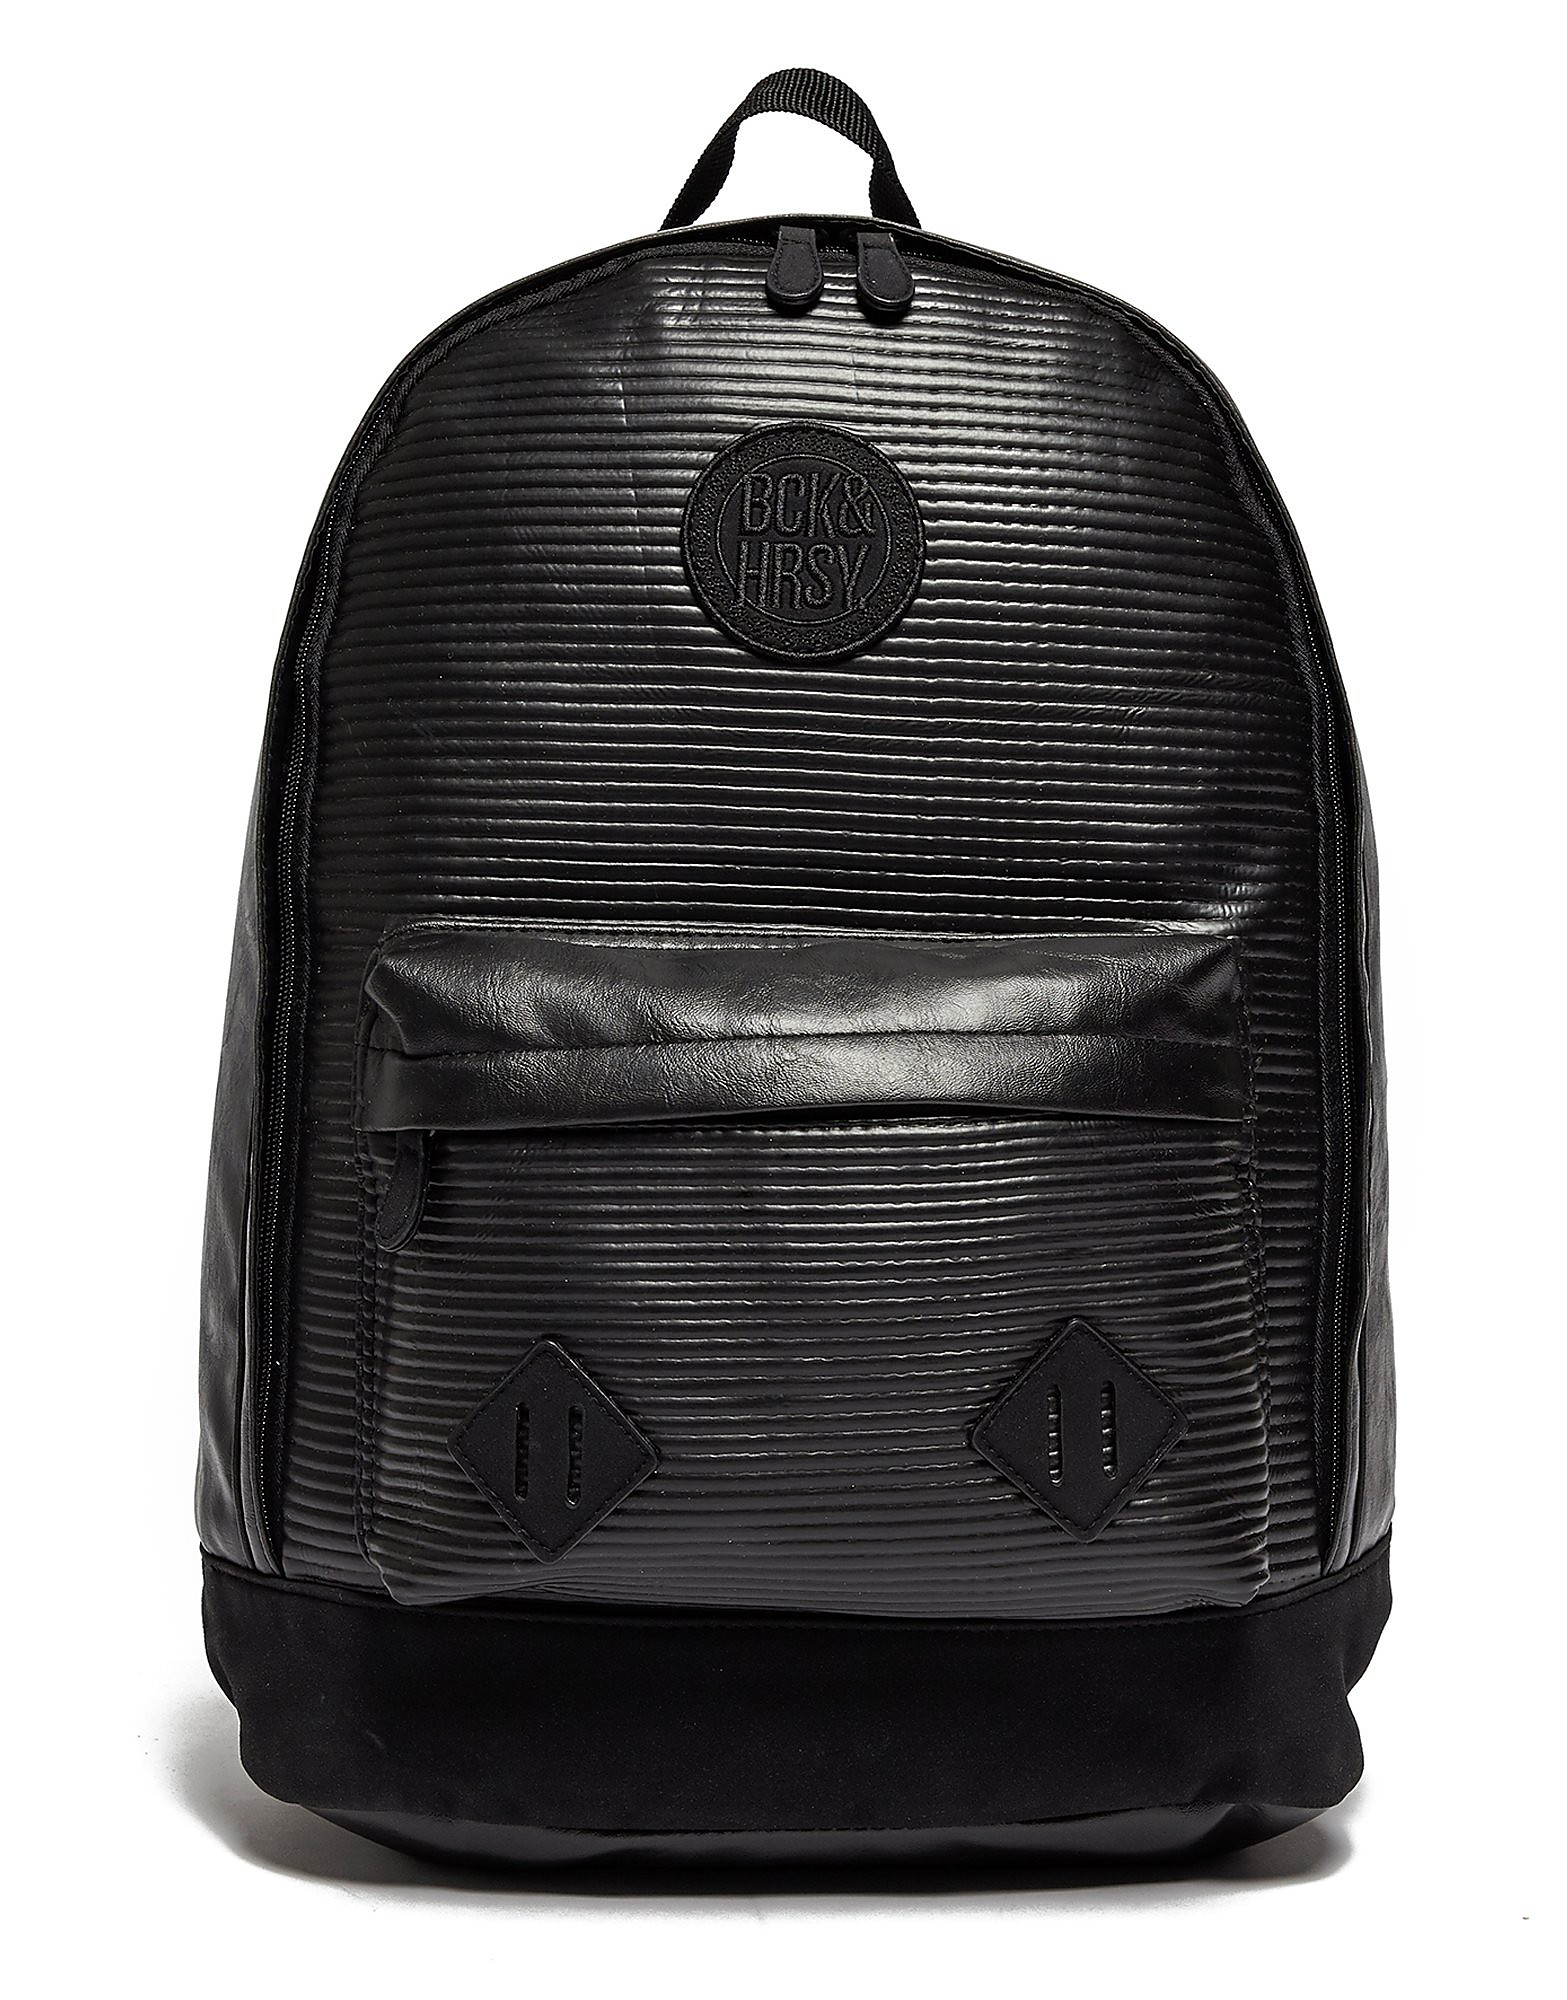 Beck and Hersey Attica Backpack